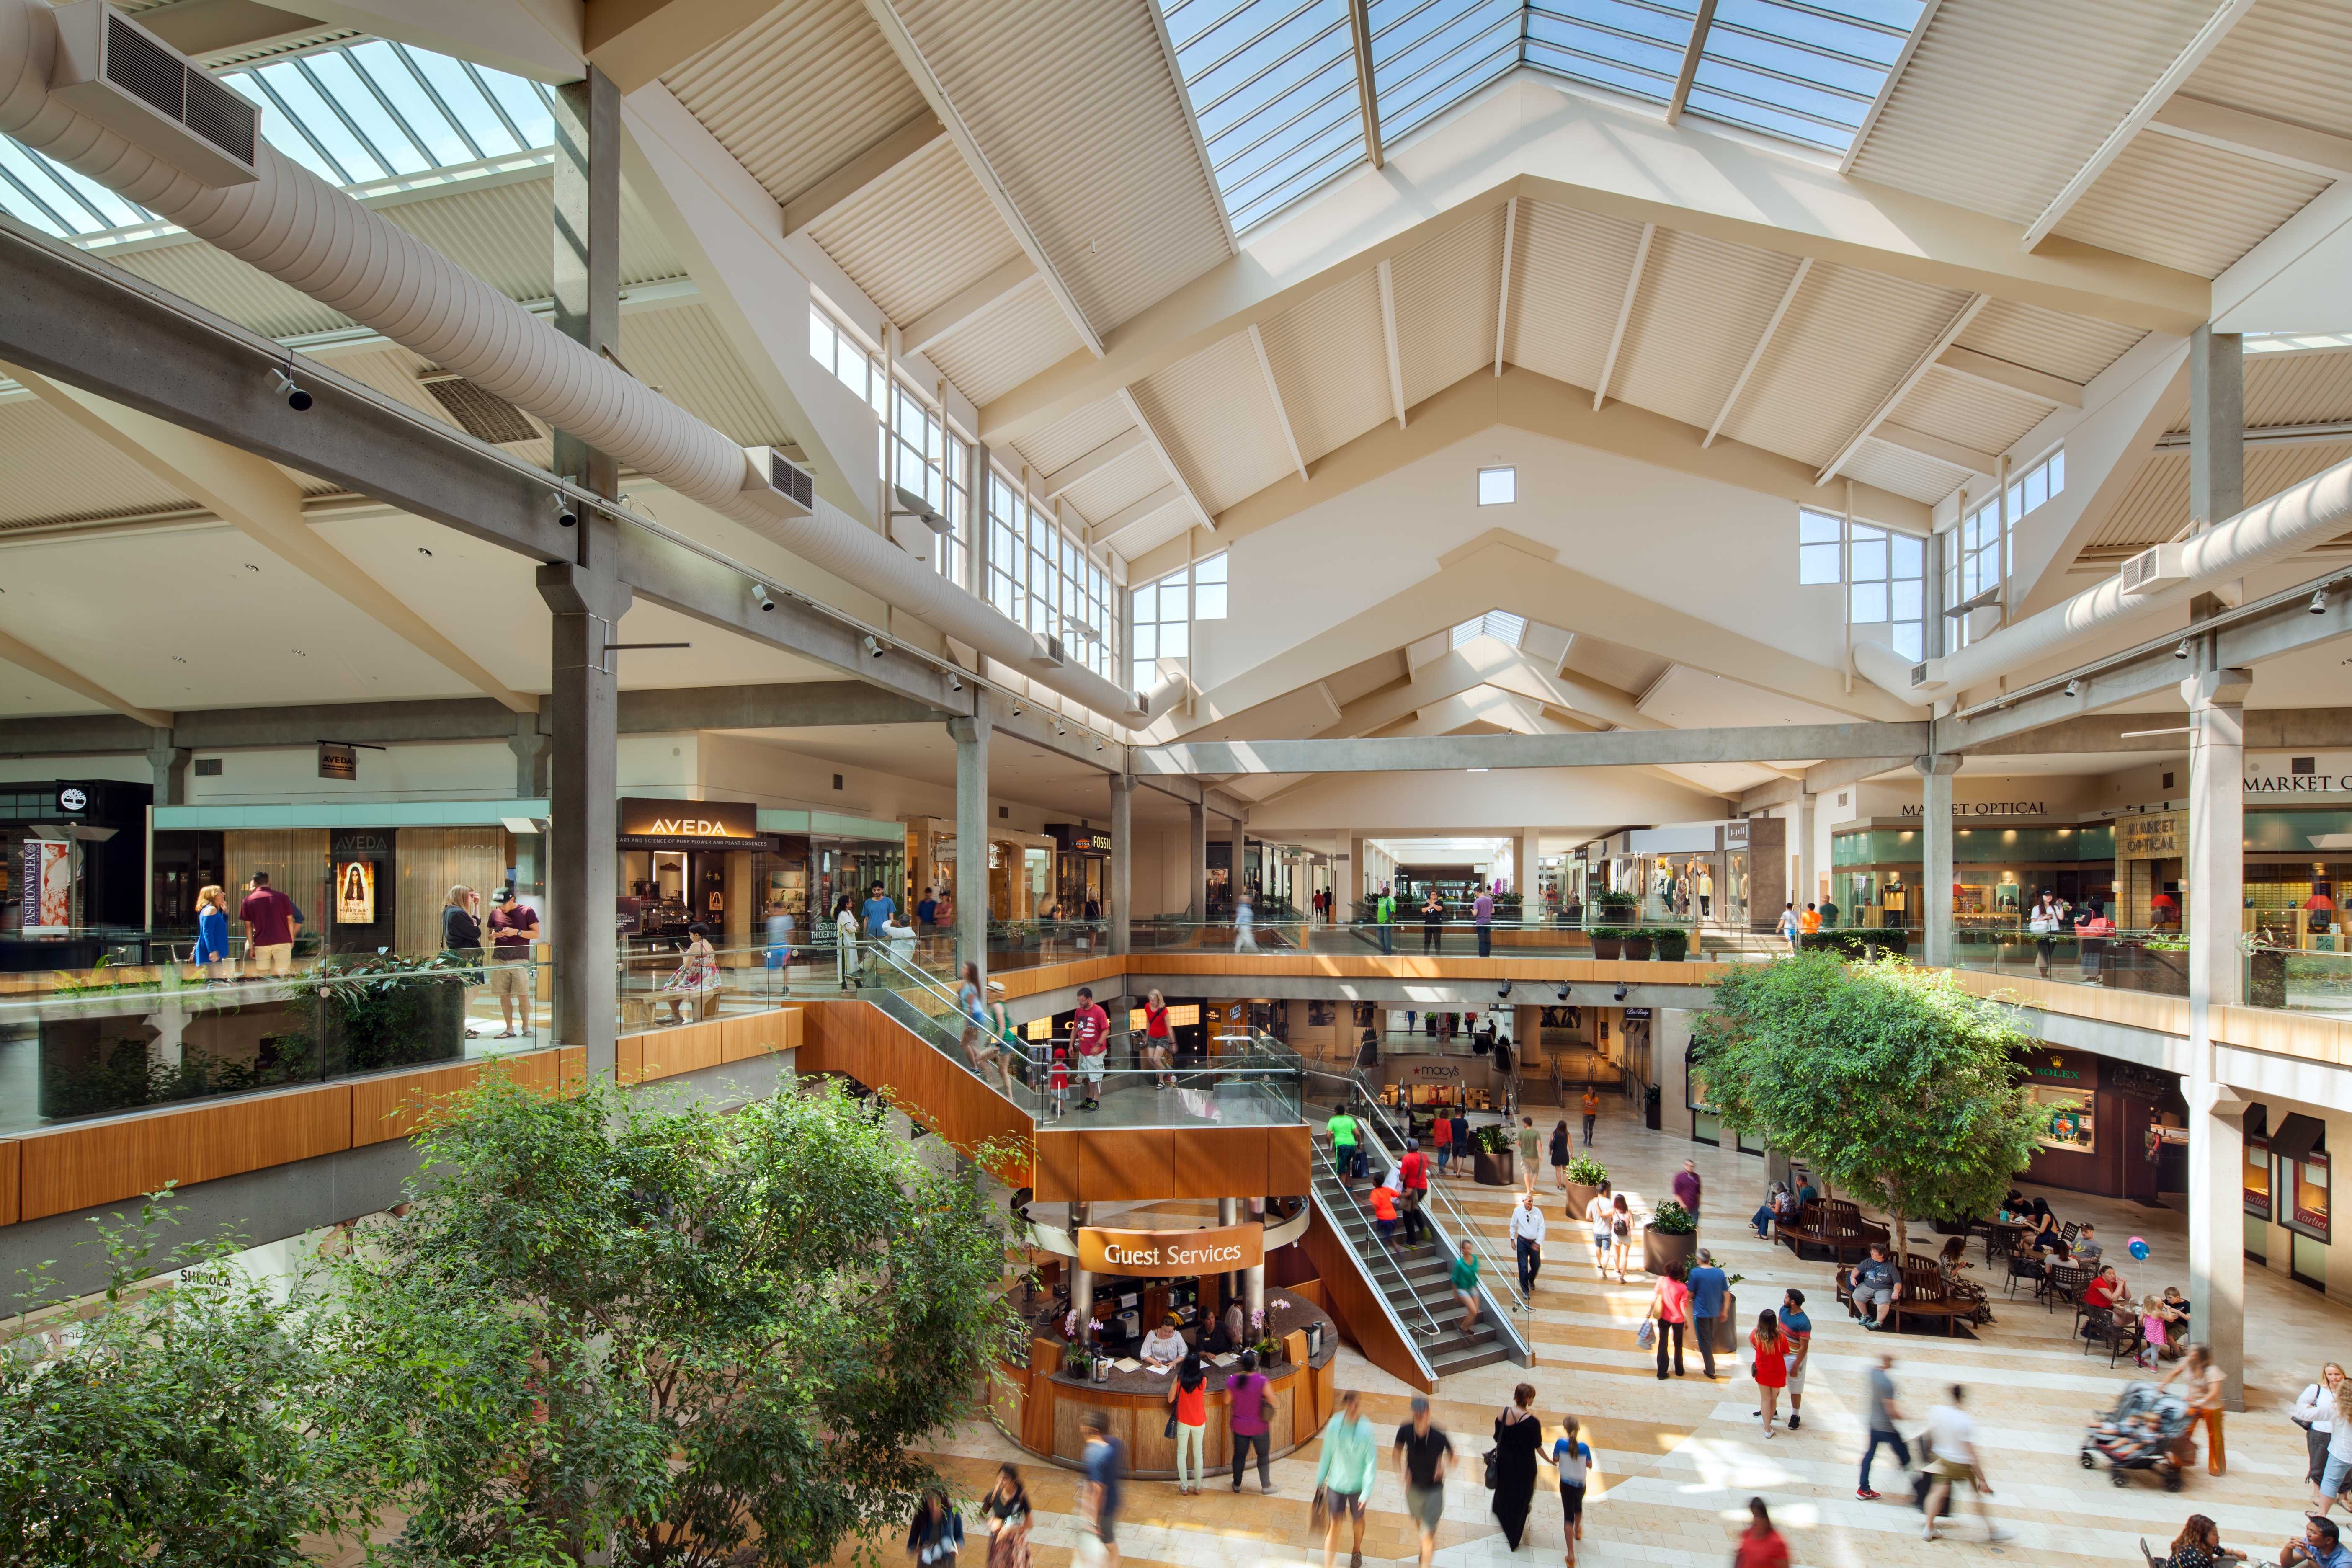 """Between Southcenter, Northgate, and Bellevue Square, this is definitely the best mall to come to in the Seattle area!"" in 16 reviews ""Bellevue square connects to Lincoln square which in turn connects to the Hyatt via the 2 sky bridges."" in 9 reviews4/4()."